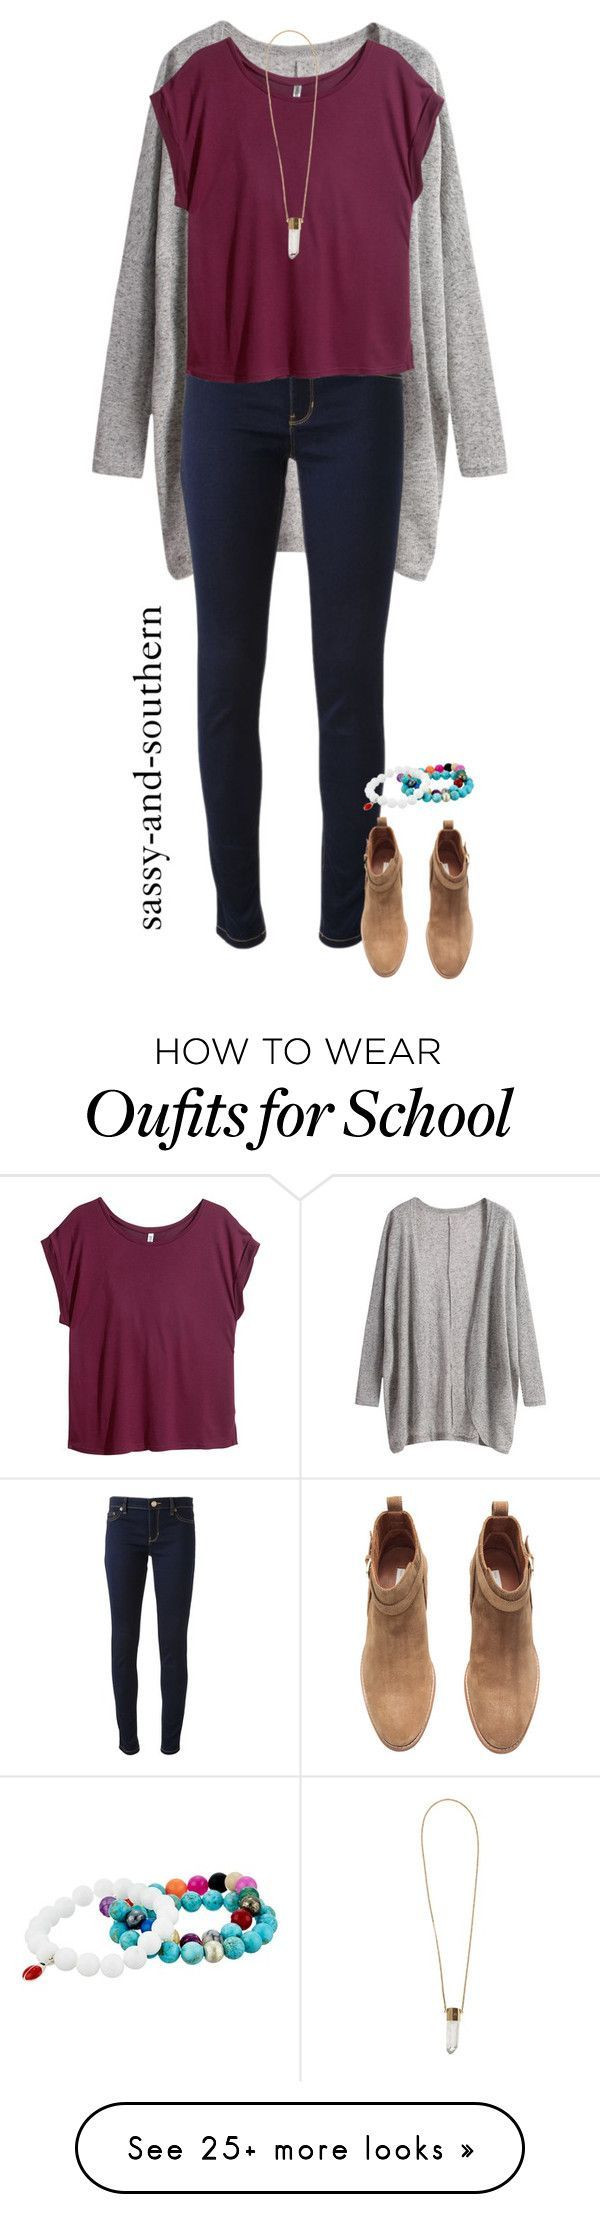 """""""school outfit"""" by sassy-and-southern on Polyvore featuring Michael Kors, H&M, C... - Polyvore Style"""